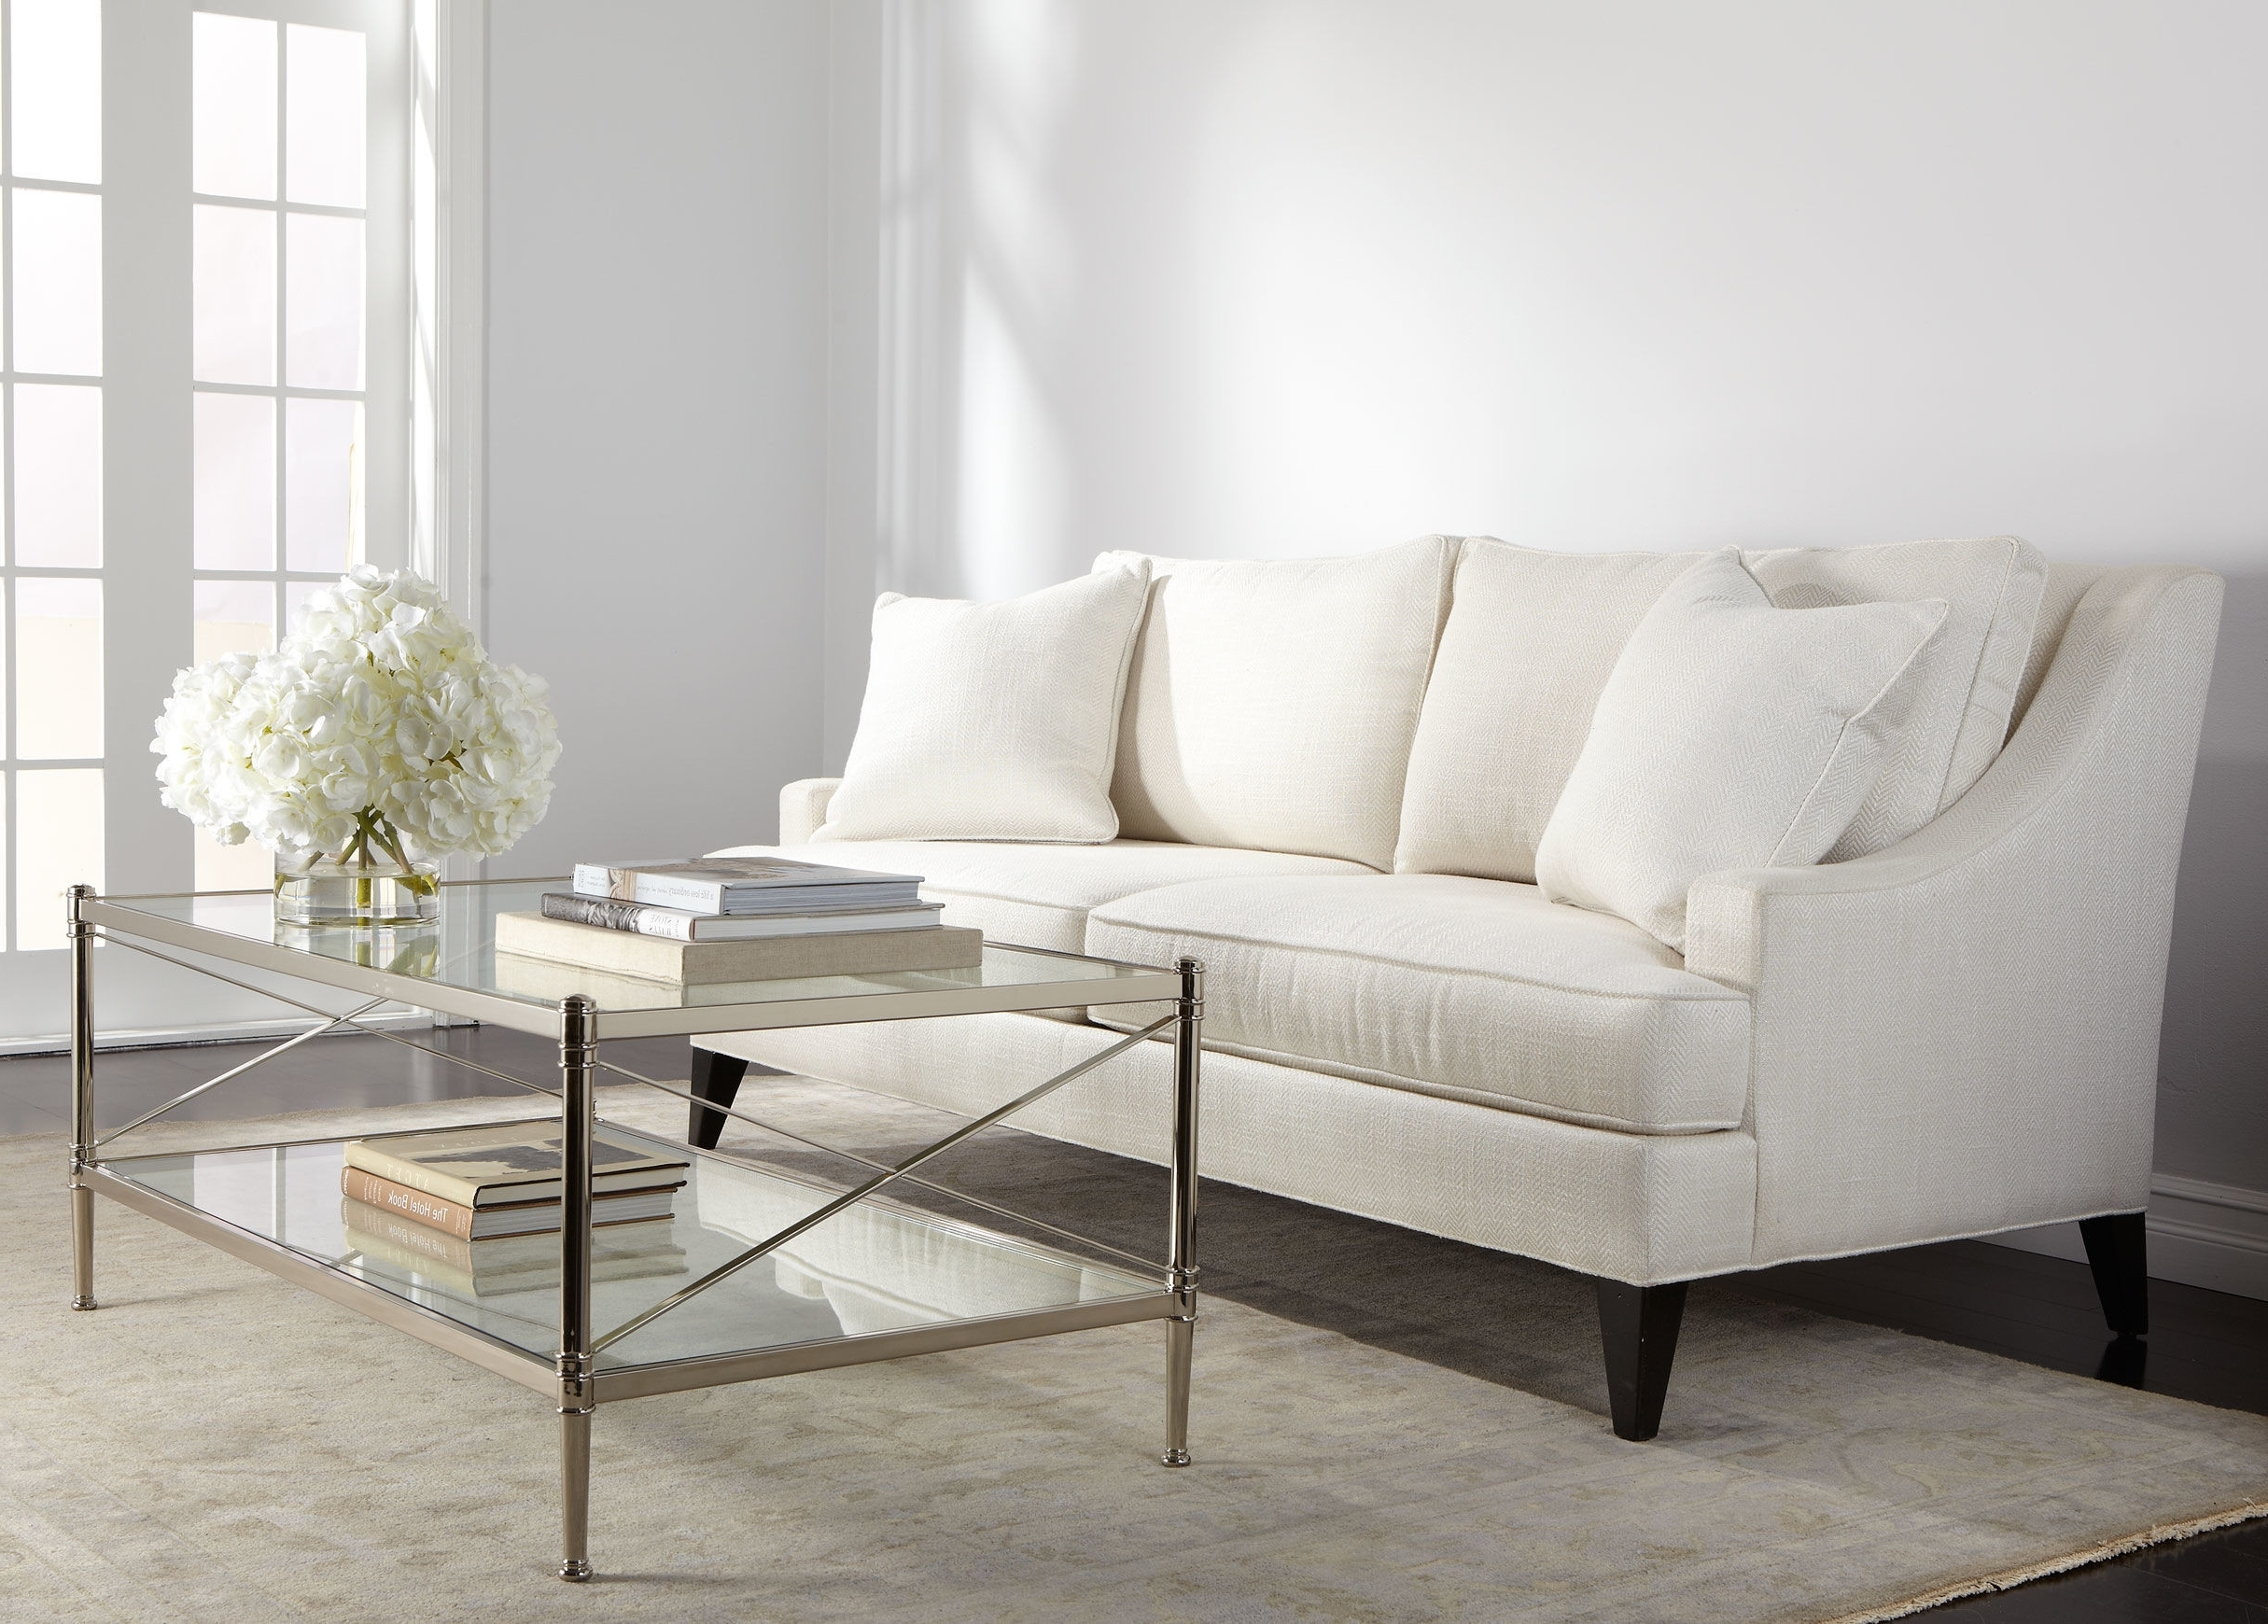 Furniture : Ethan Allen Down Filled Sofa Elegant Best Ethan Allen For Well Known Down Filled Sofas (View 6 of 15)